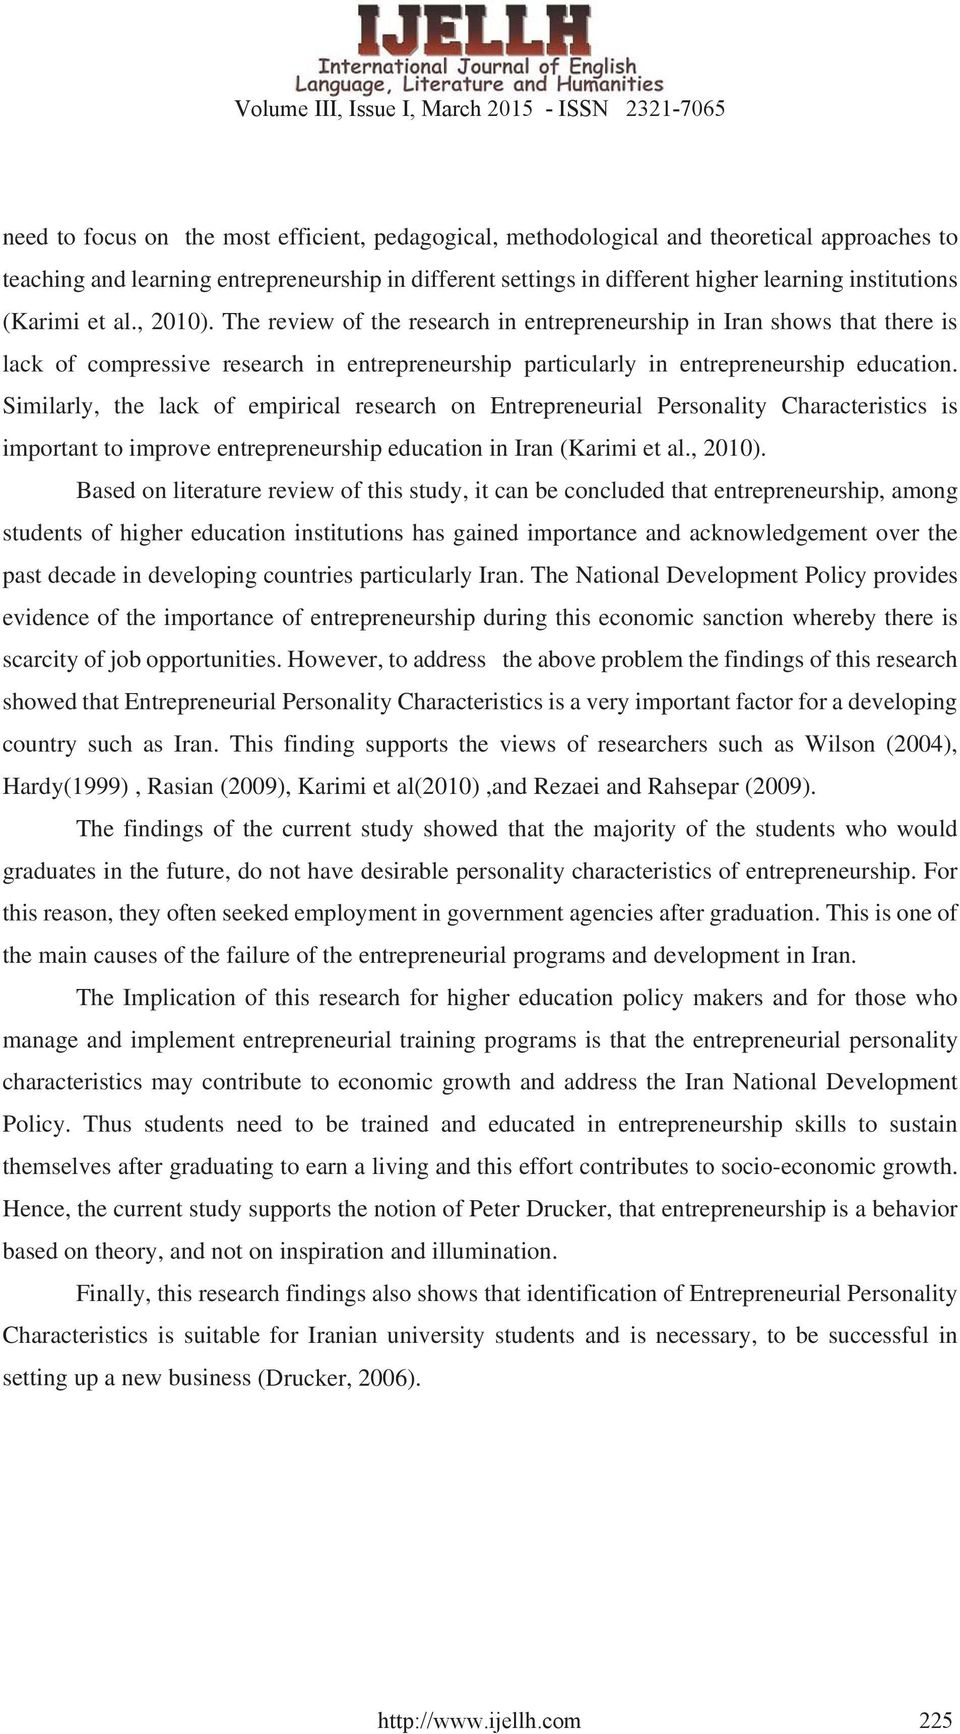 Similarly, the lack of empirical research on Entrepreneurial Personality Characteristics is important to improve entrepreneurship education in Iran (Karimi et al., 2010).